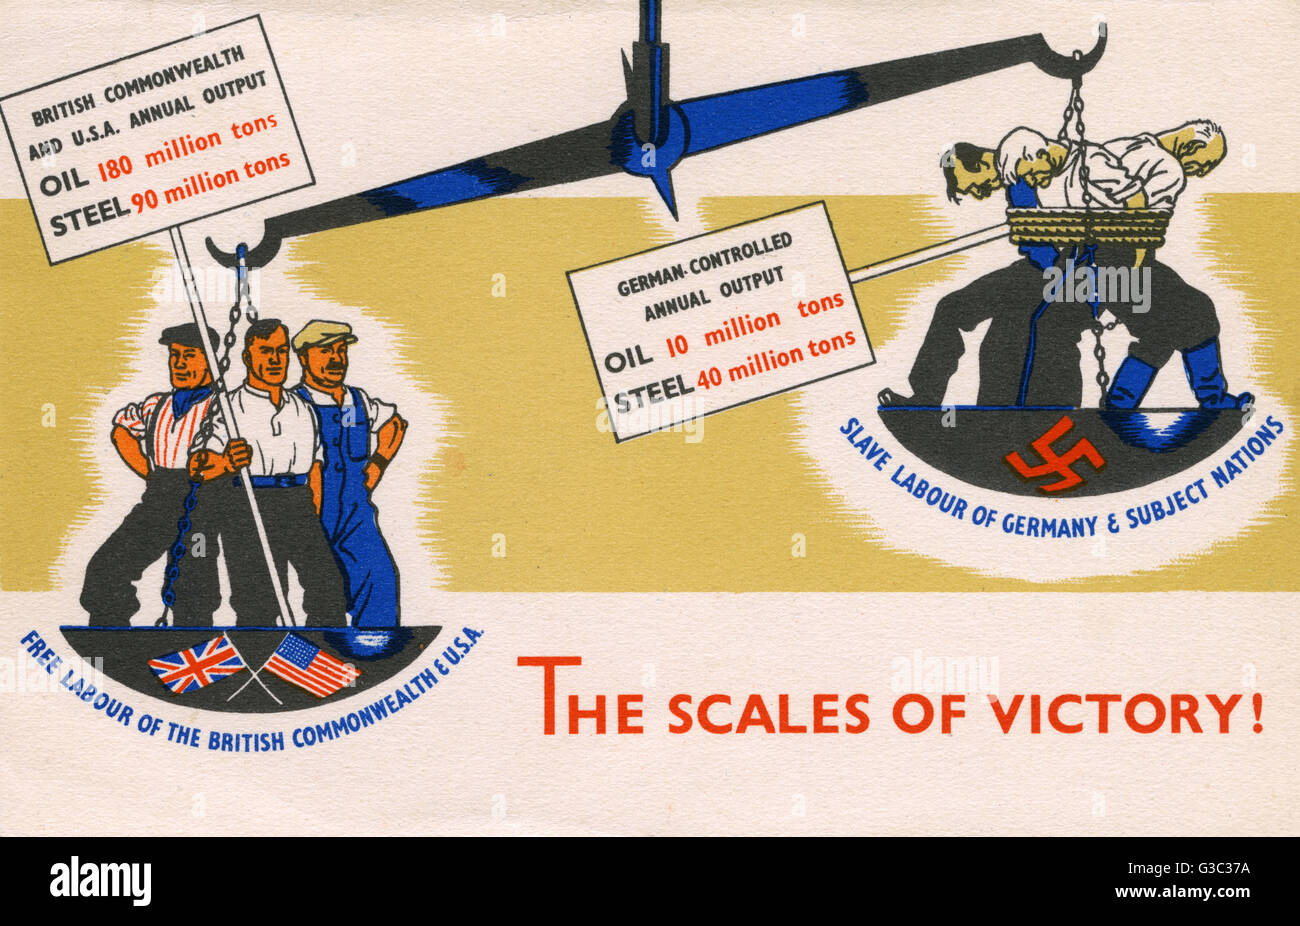 WW2 - The Scales of Victory - Oil and Steel Output compared between the 'Free' Labour of the British Commonwealth - Stock Image